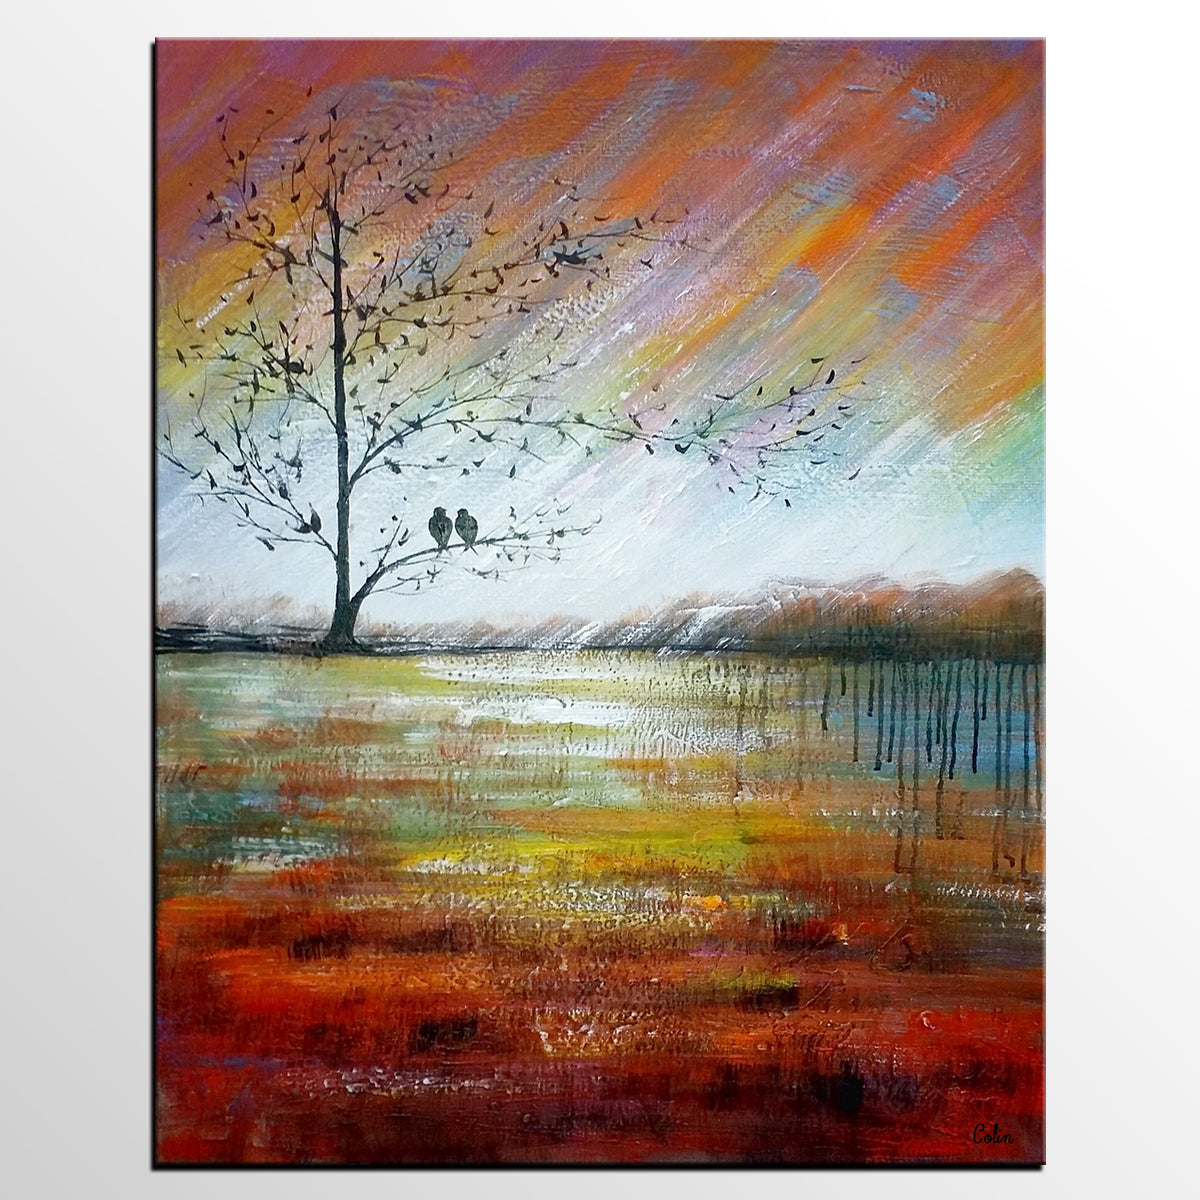 Modern Art, Abstract Landscape Painting, Love Birds Painting, Abstract Painting, Large Art, Canvas Art, Wall Art, Canvas Painting - artworkcanvas